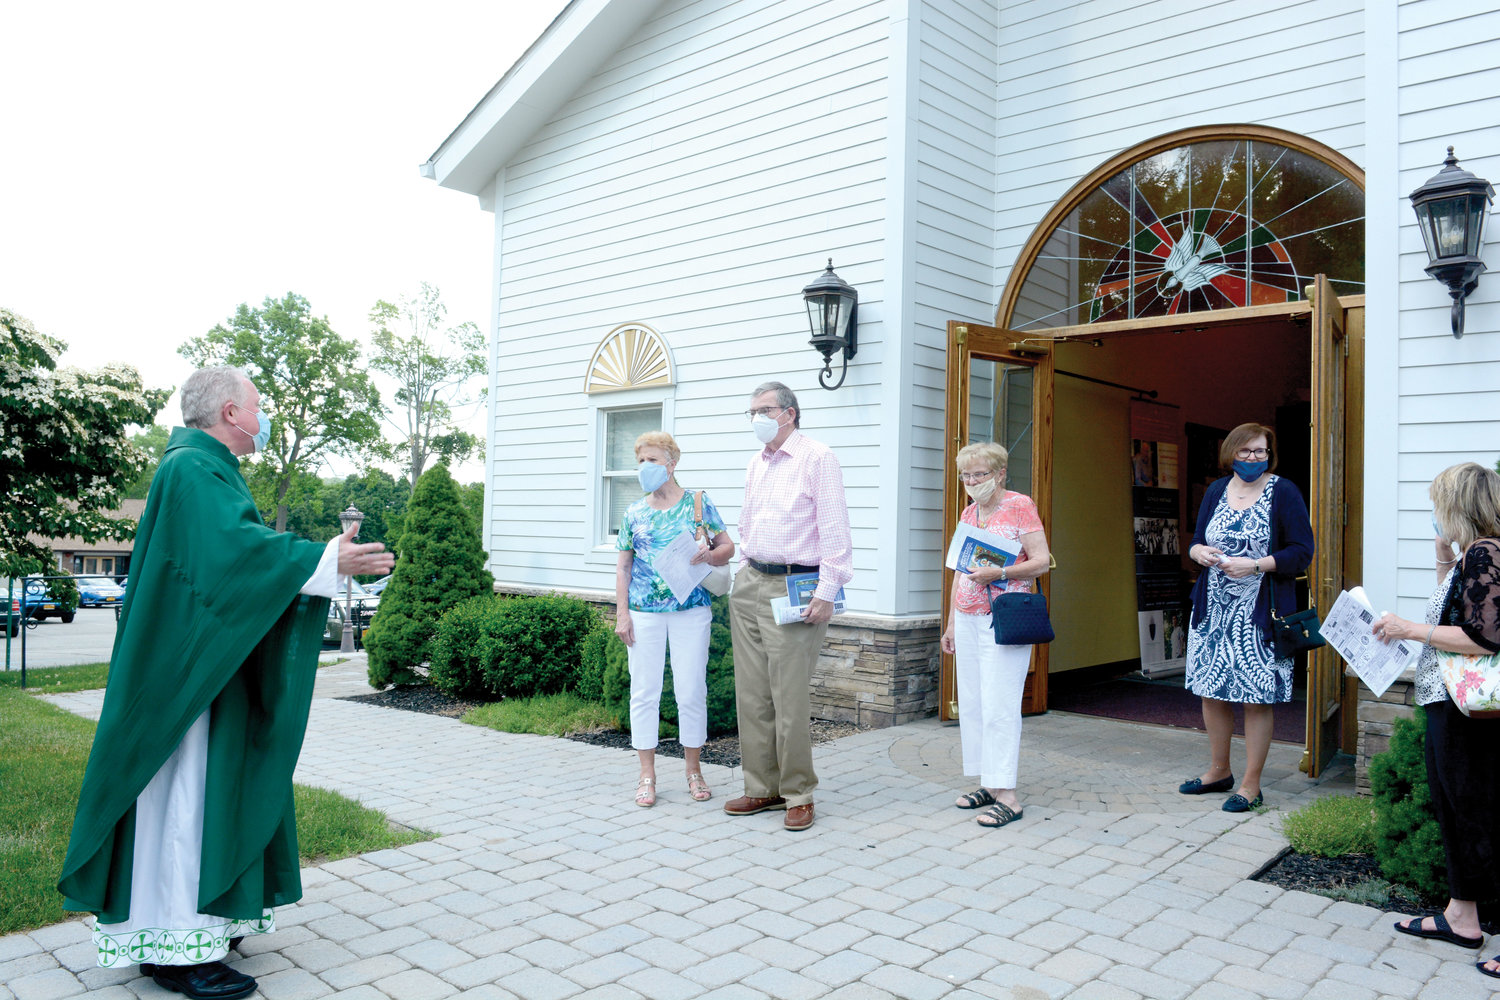 Father Michael Keane, pastor of St. Anastasia, greets parishioners outside after Mass.